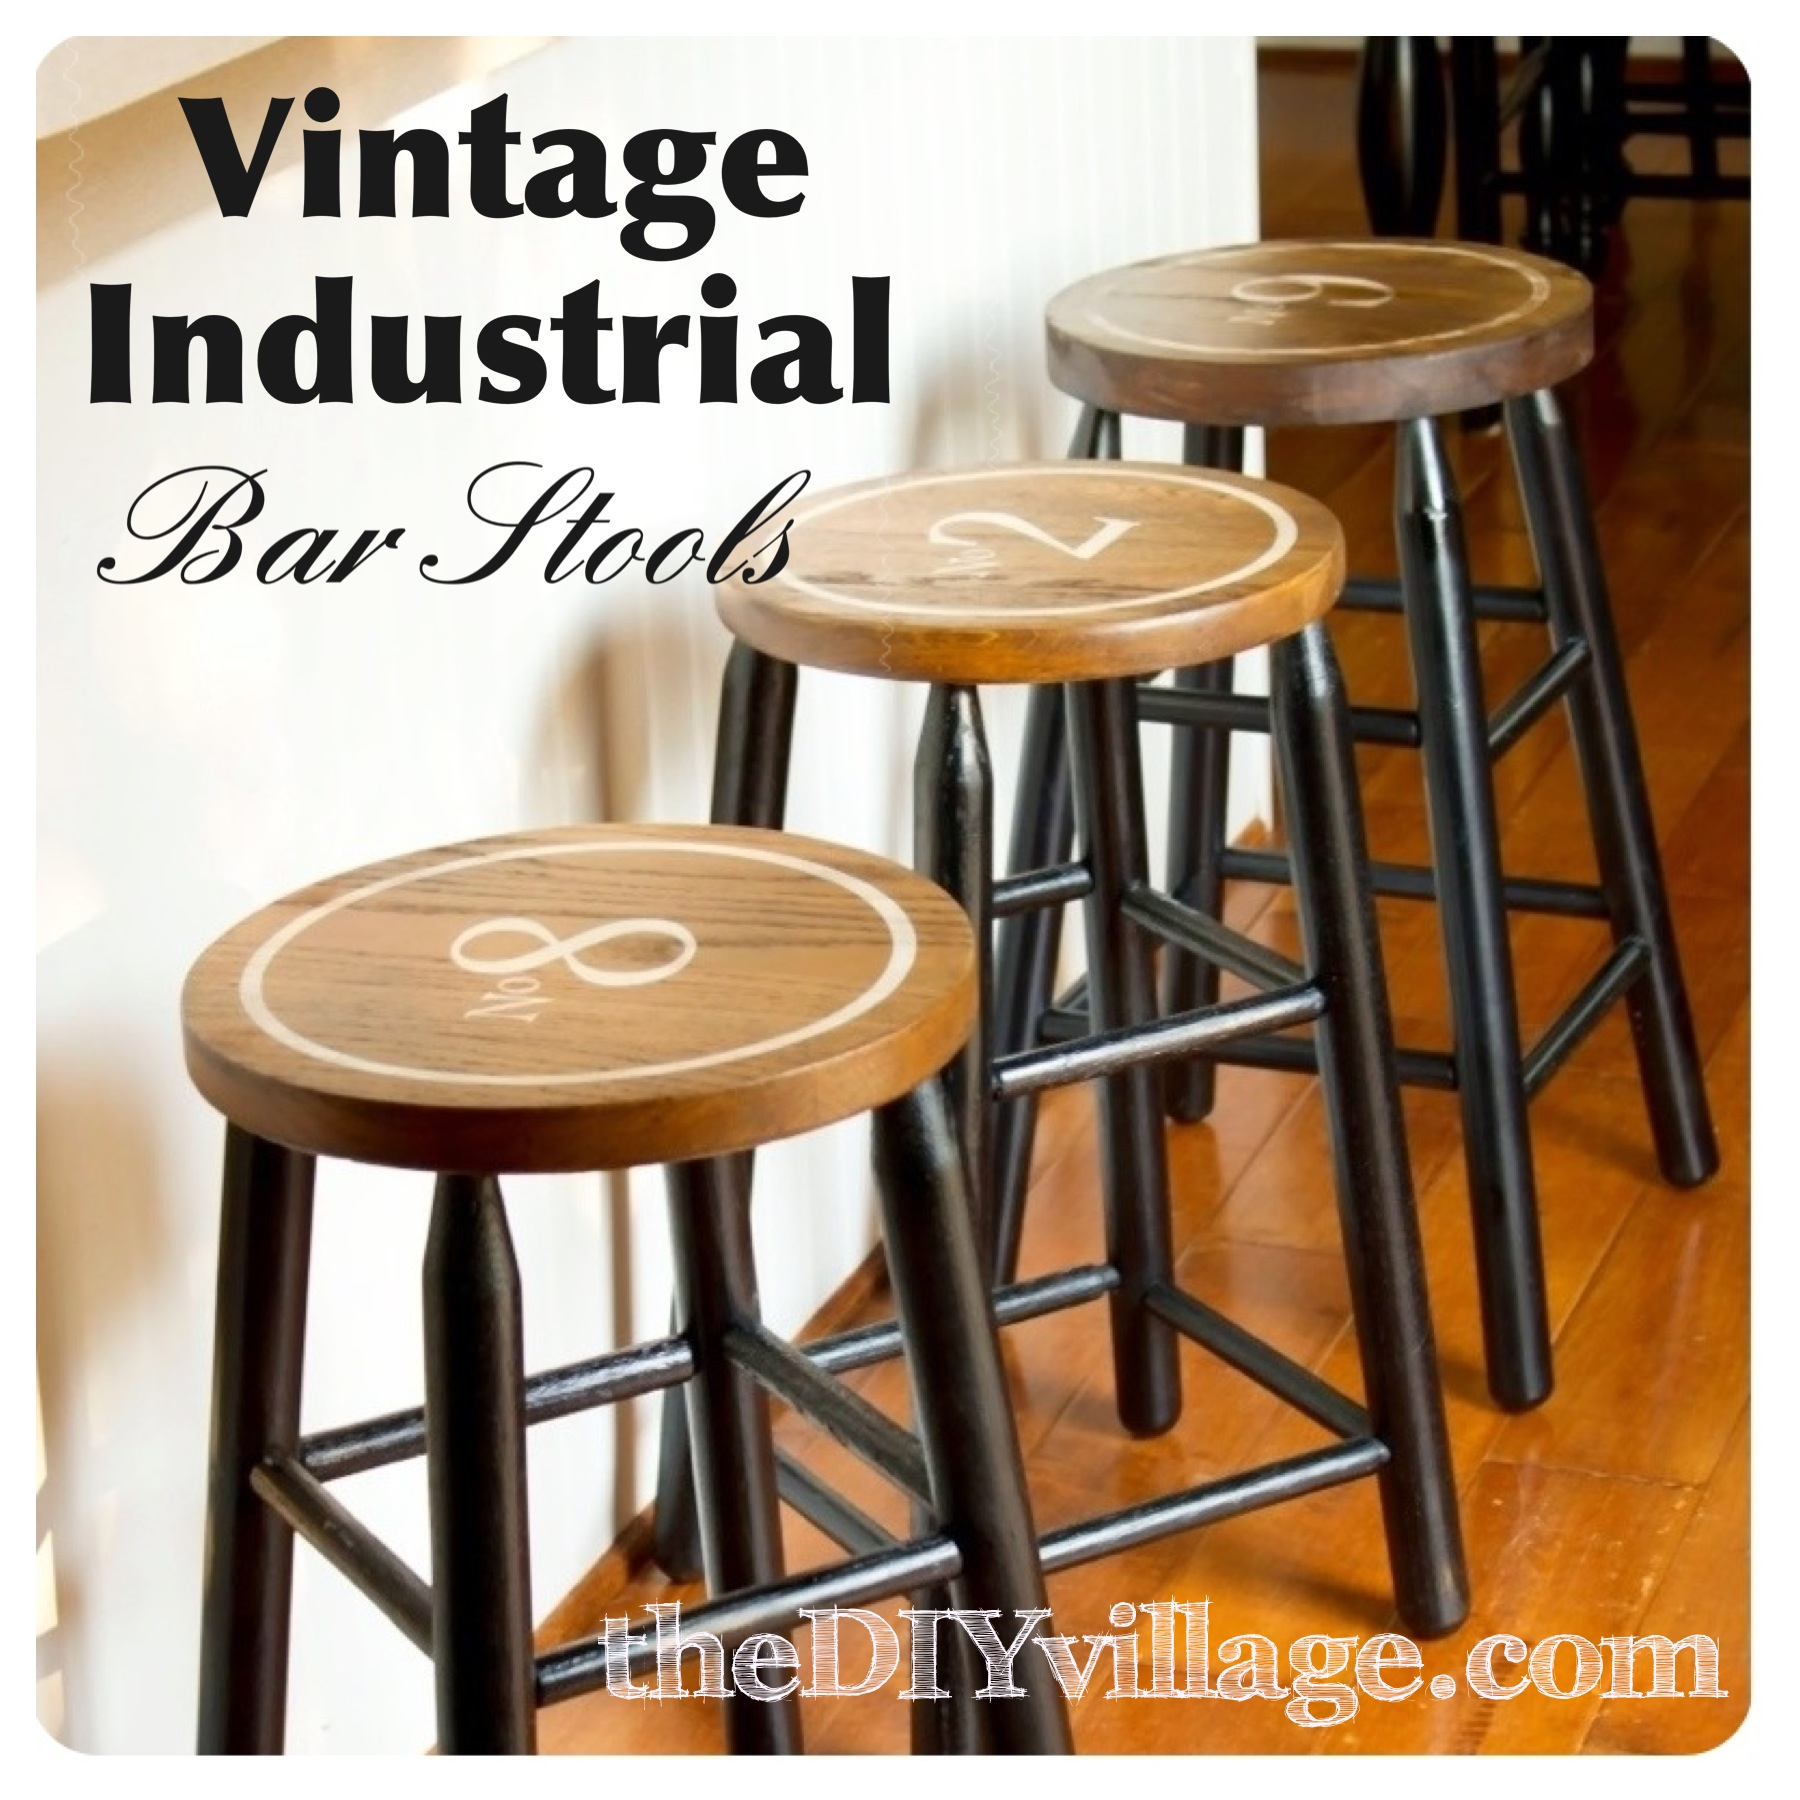 Impeccable Numbered Bar Stools Vintage Industrial Diy Bar Stools Diy Village Industrial Bar Stools Swivel Industrial Bar Stools Walmart houzz-03 Industrial Bar Stools